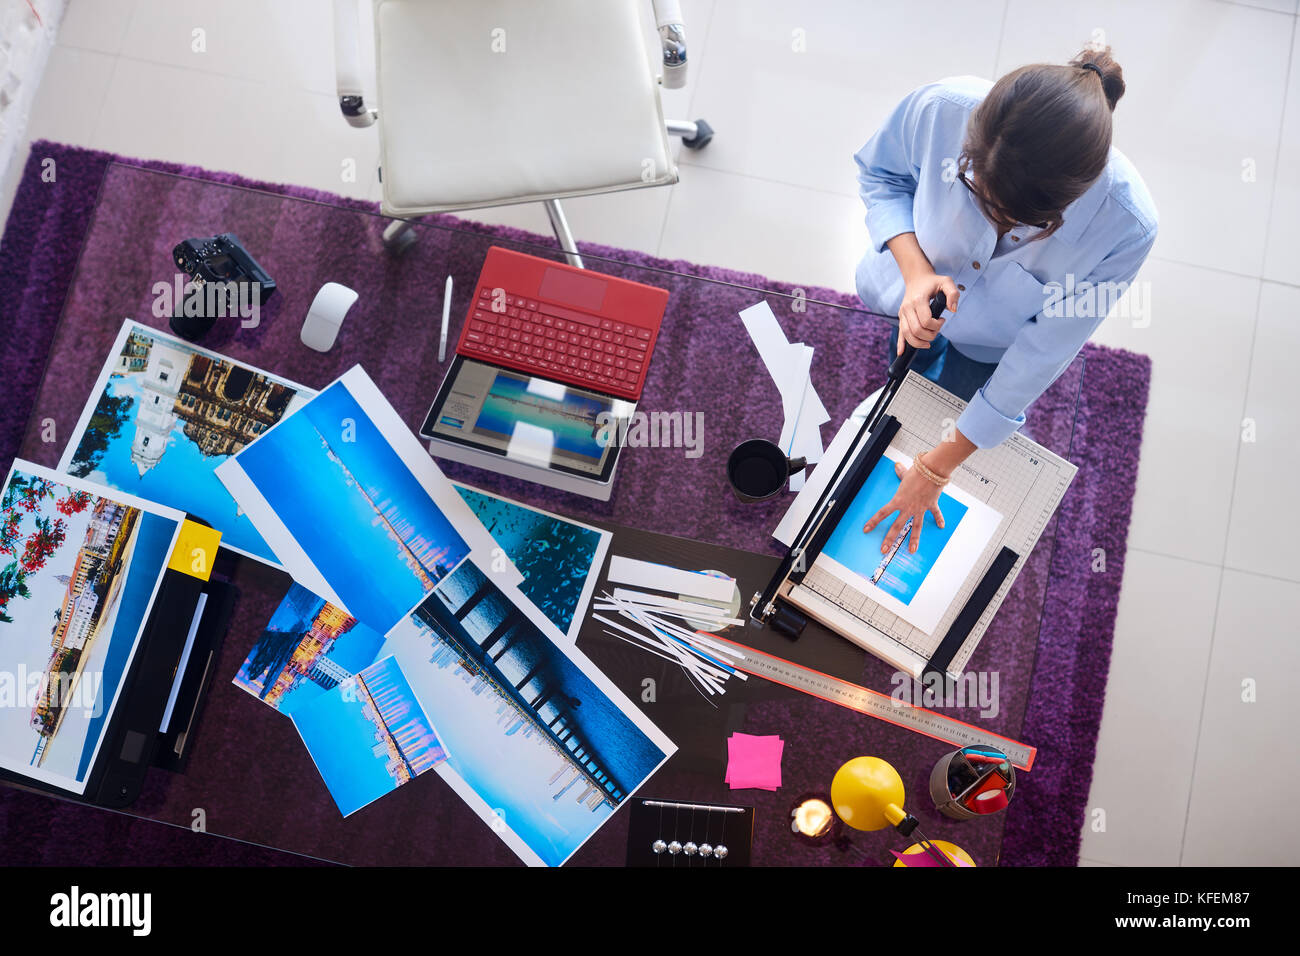 Photographer And Artist Working On Picture In Design Studio - Stock Image